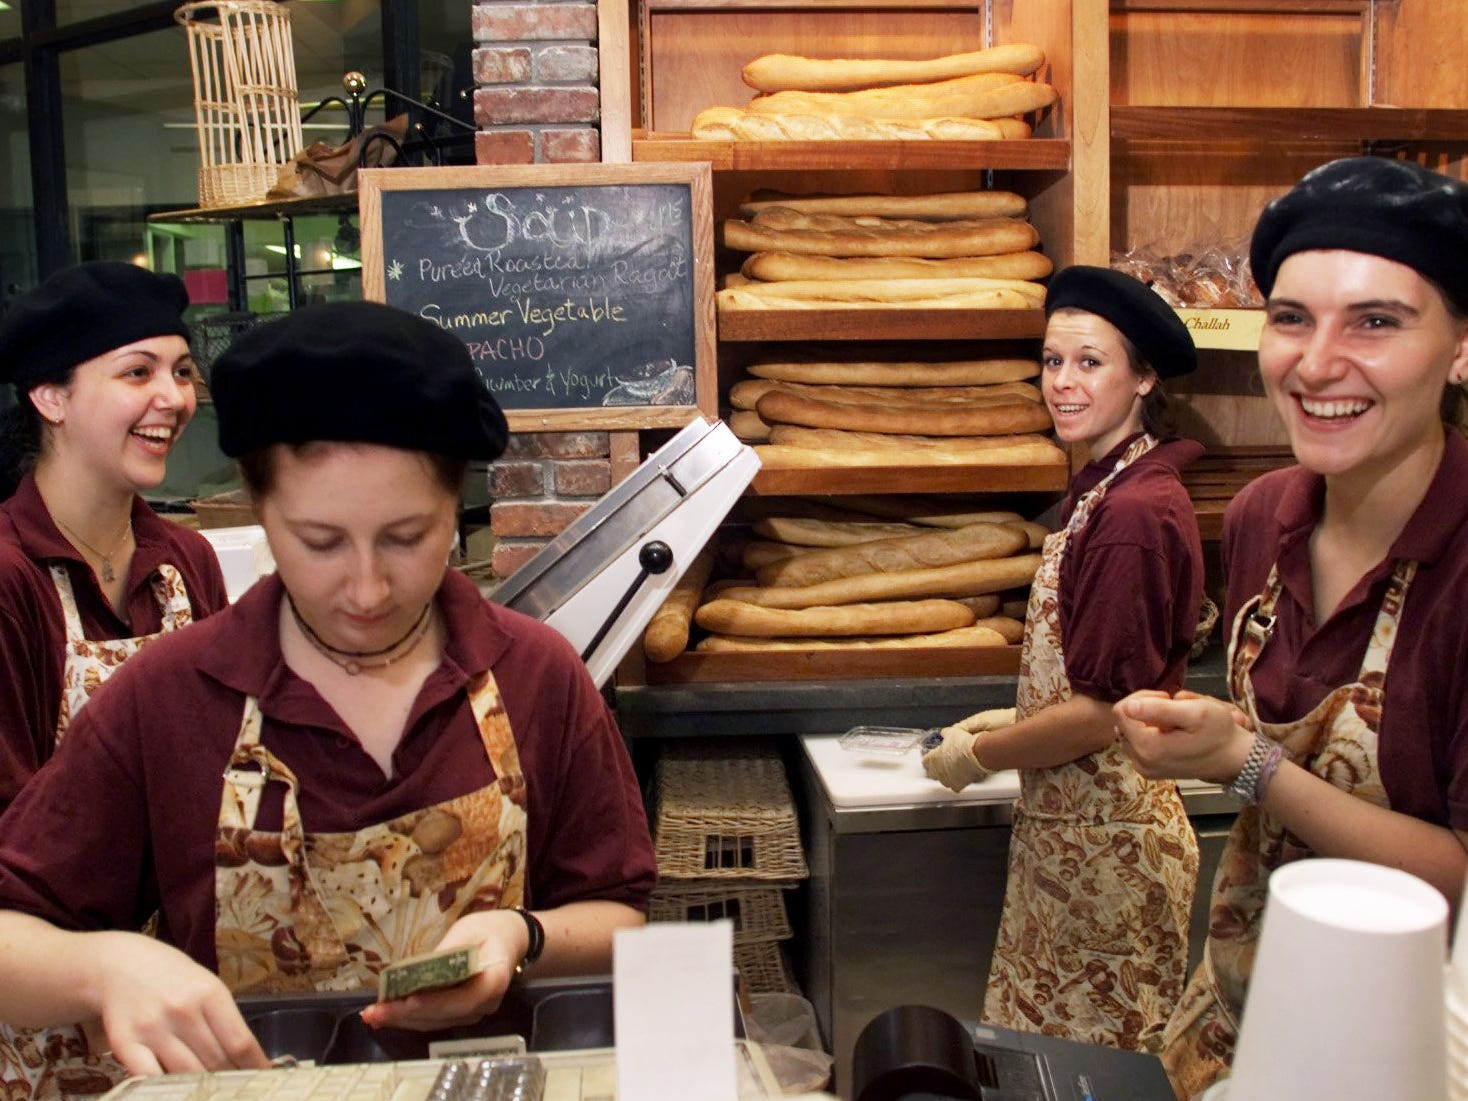 The addition of French berets for Bastille Day in the Village, along with their French aprons, Devon Hedgecoth, left, Kelda Olson, Jessica Limbird and Whitney May help serve customers at Provence Breads and Cafe July 14, 2000.